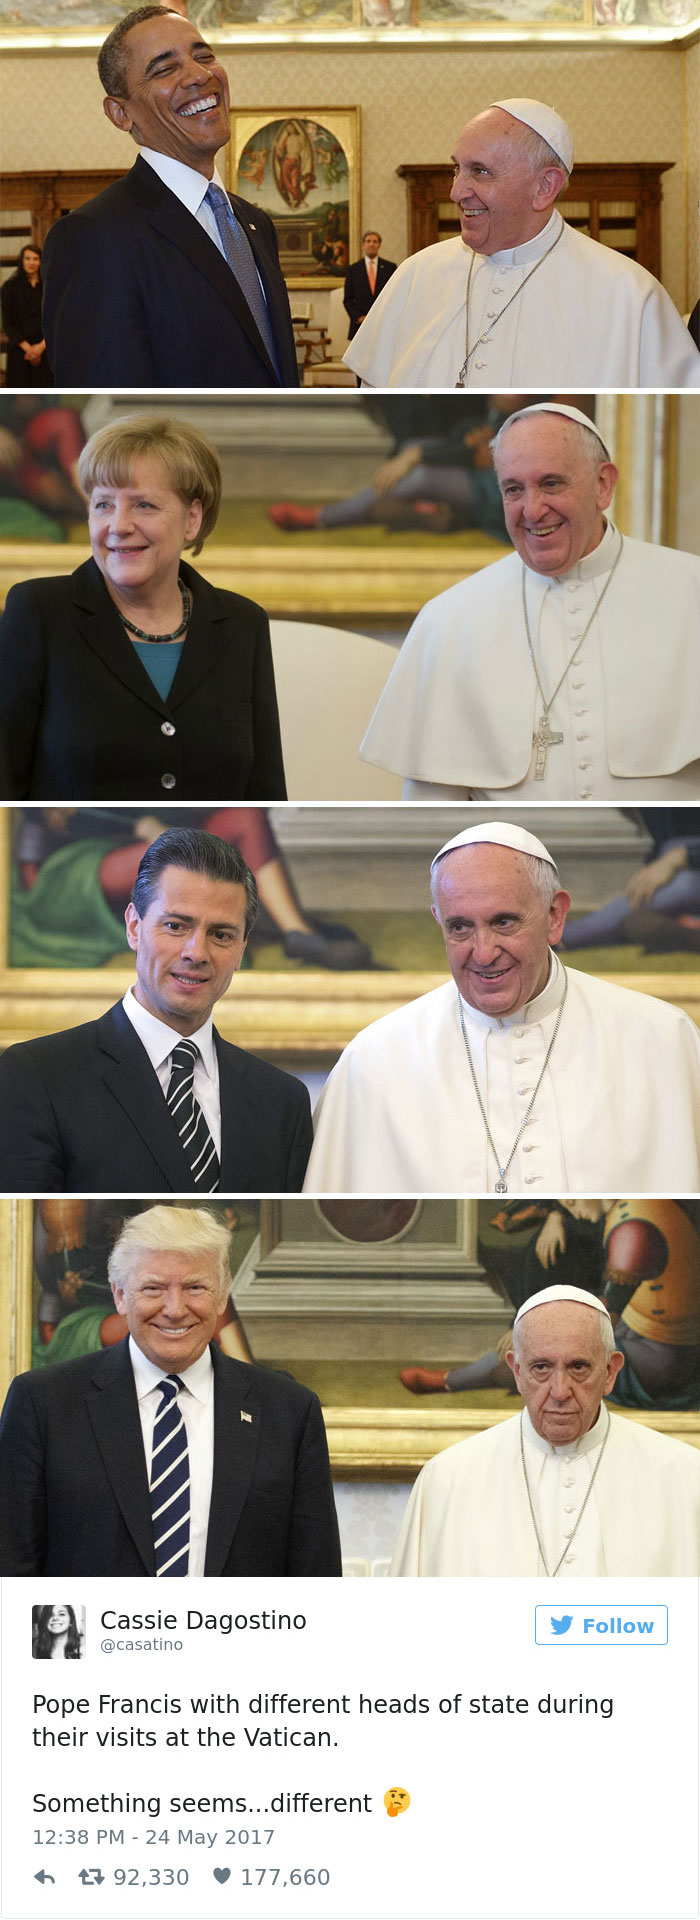 donald trump pope francis memes 16 59269410a1fbb__700 10 of the funniest reactions to super sad pope meeting the trumps,Pope Francis Trump Meme